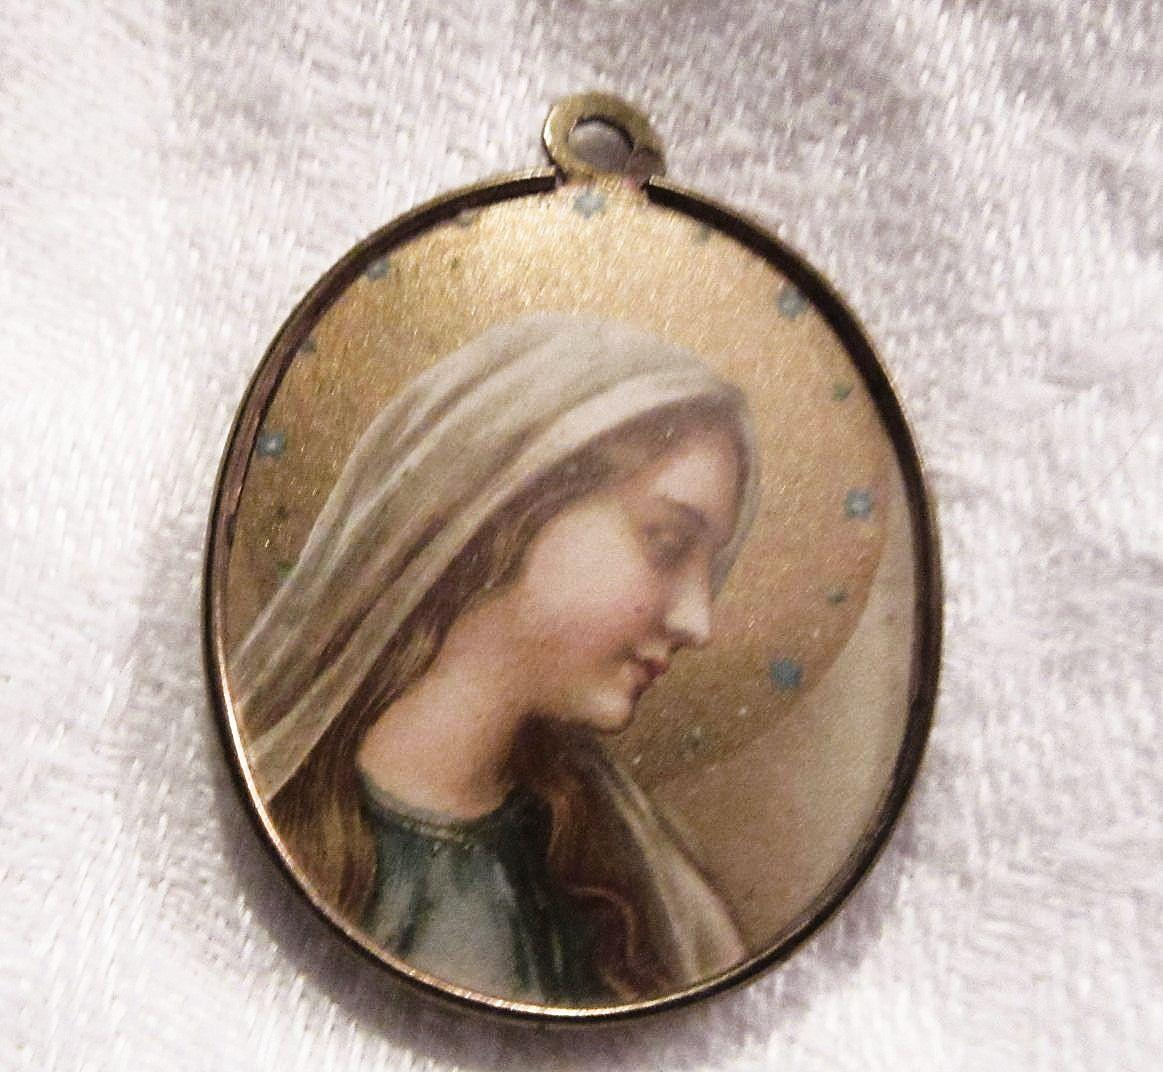 Virgin Mary Madonna Jesus Two Sided Art Medal